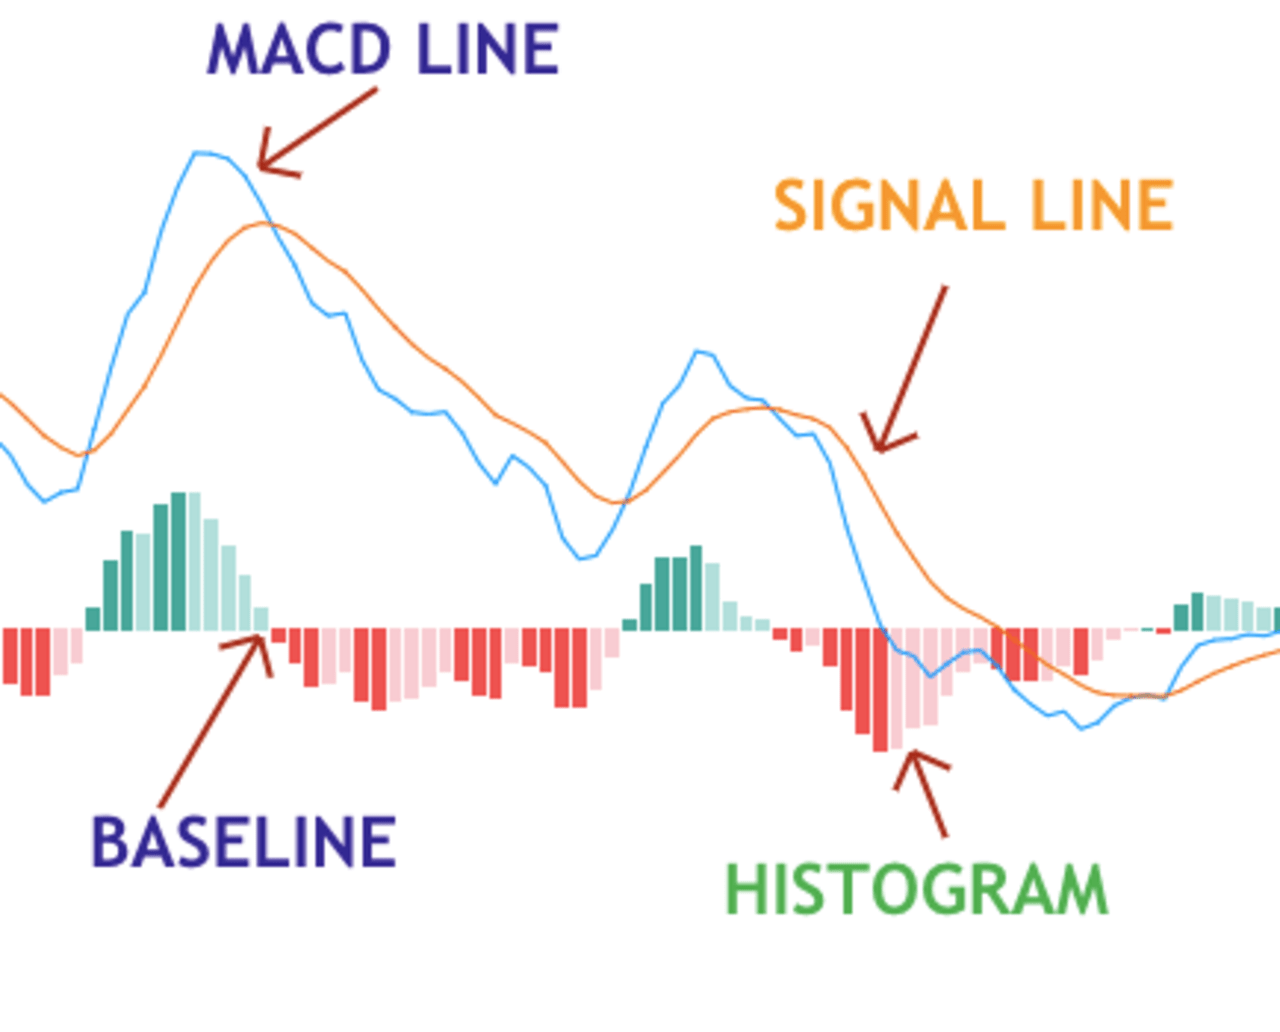 calculations of MACD